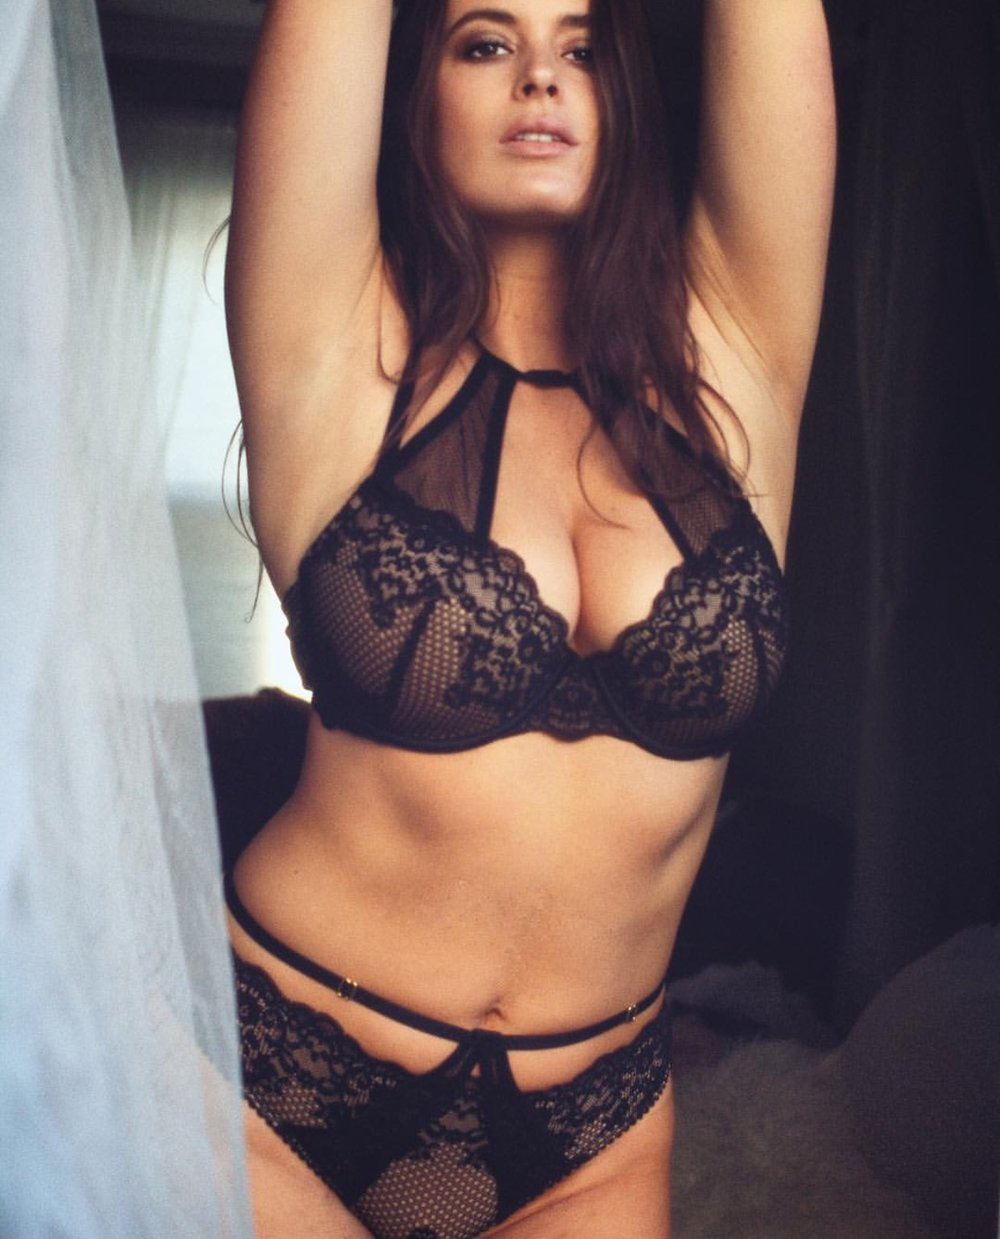 photo @iamjtgallery | Lingerie @brasnthings